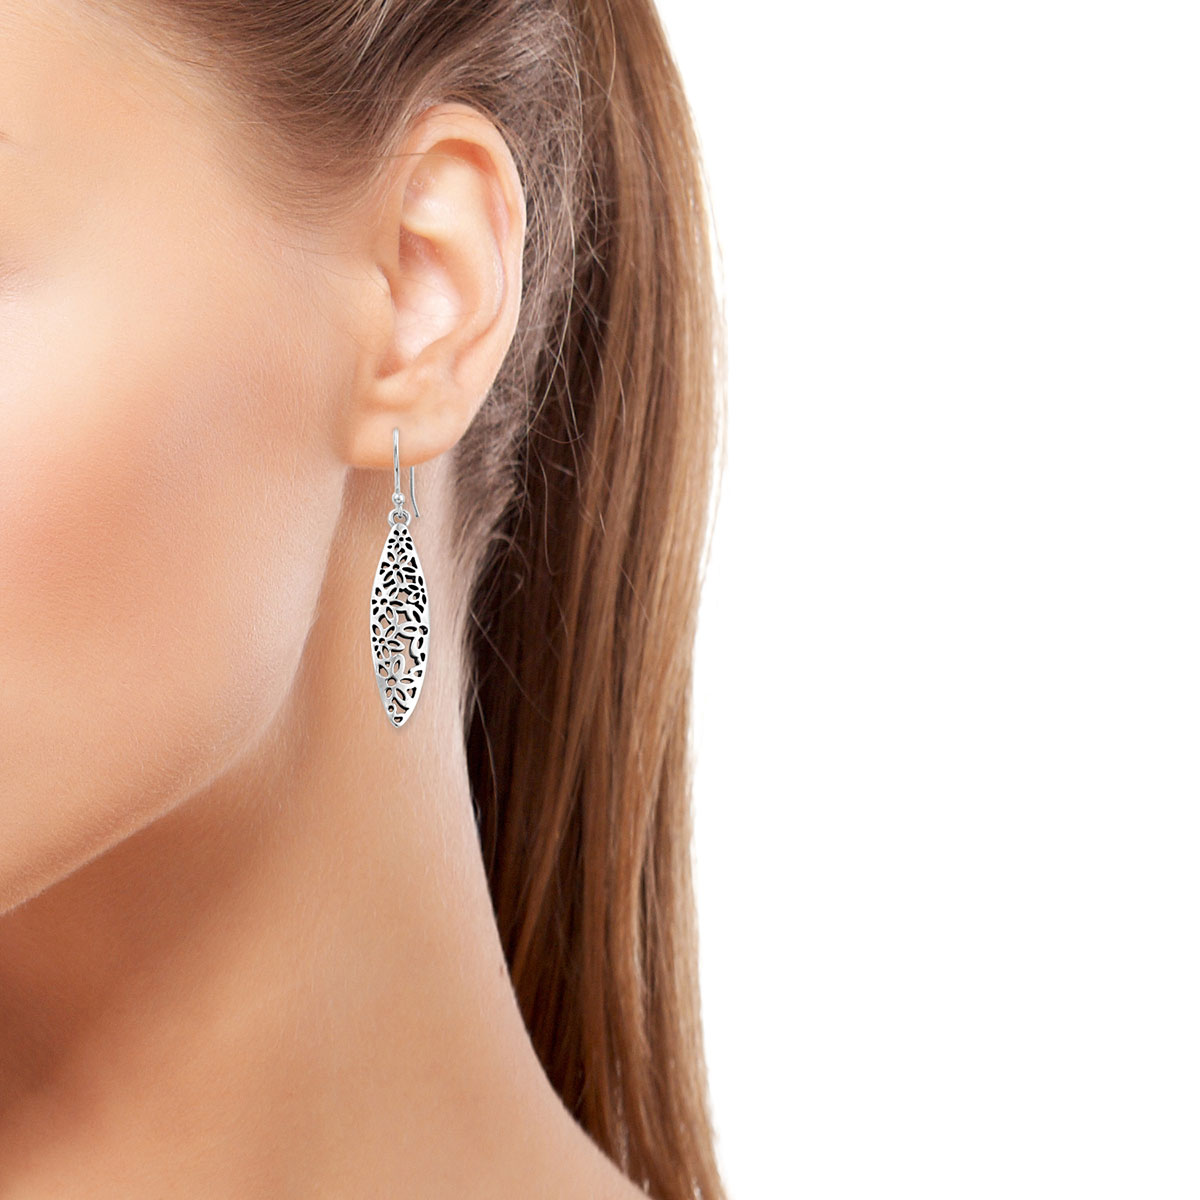 Artisan Crafted Sterling Silver Earrings (4.52 g)